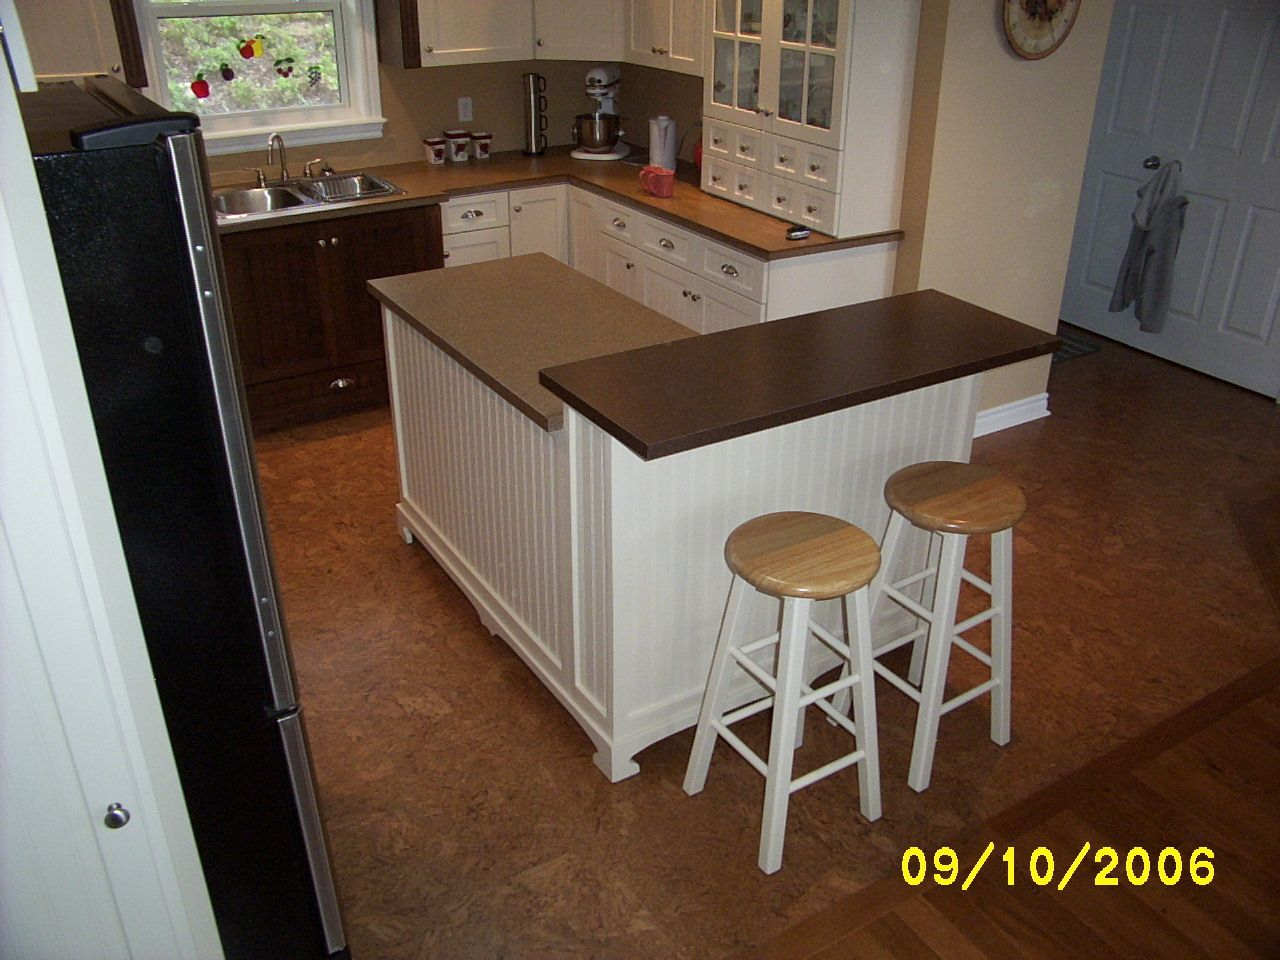 Kitchen Island Diy seating diy with kitchen island ~ homemade kitchen island: diy